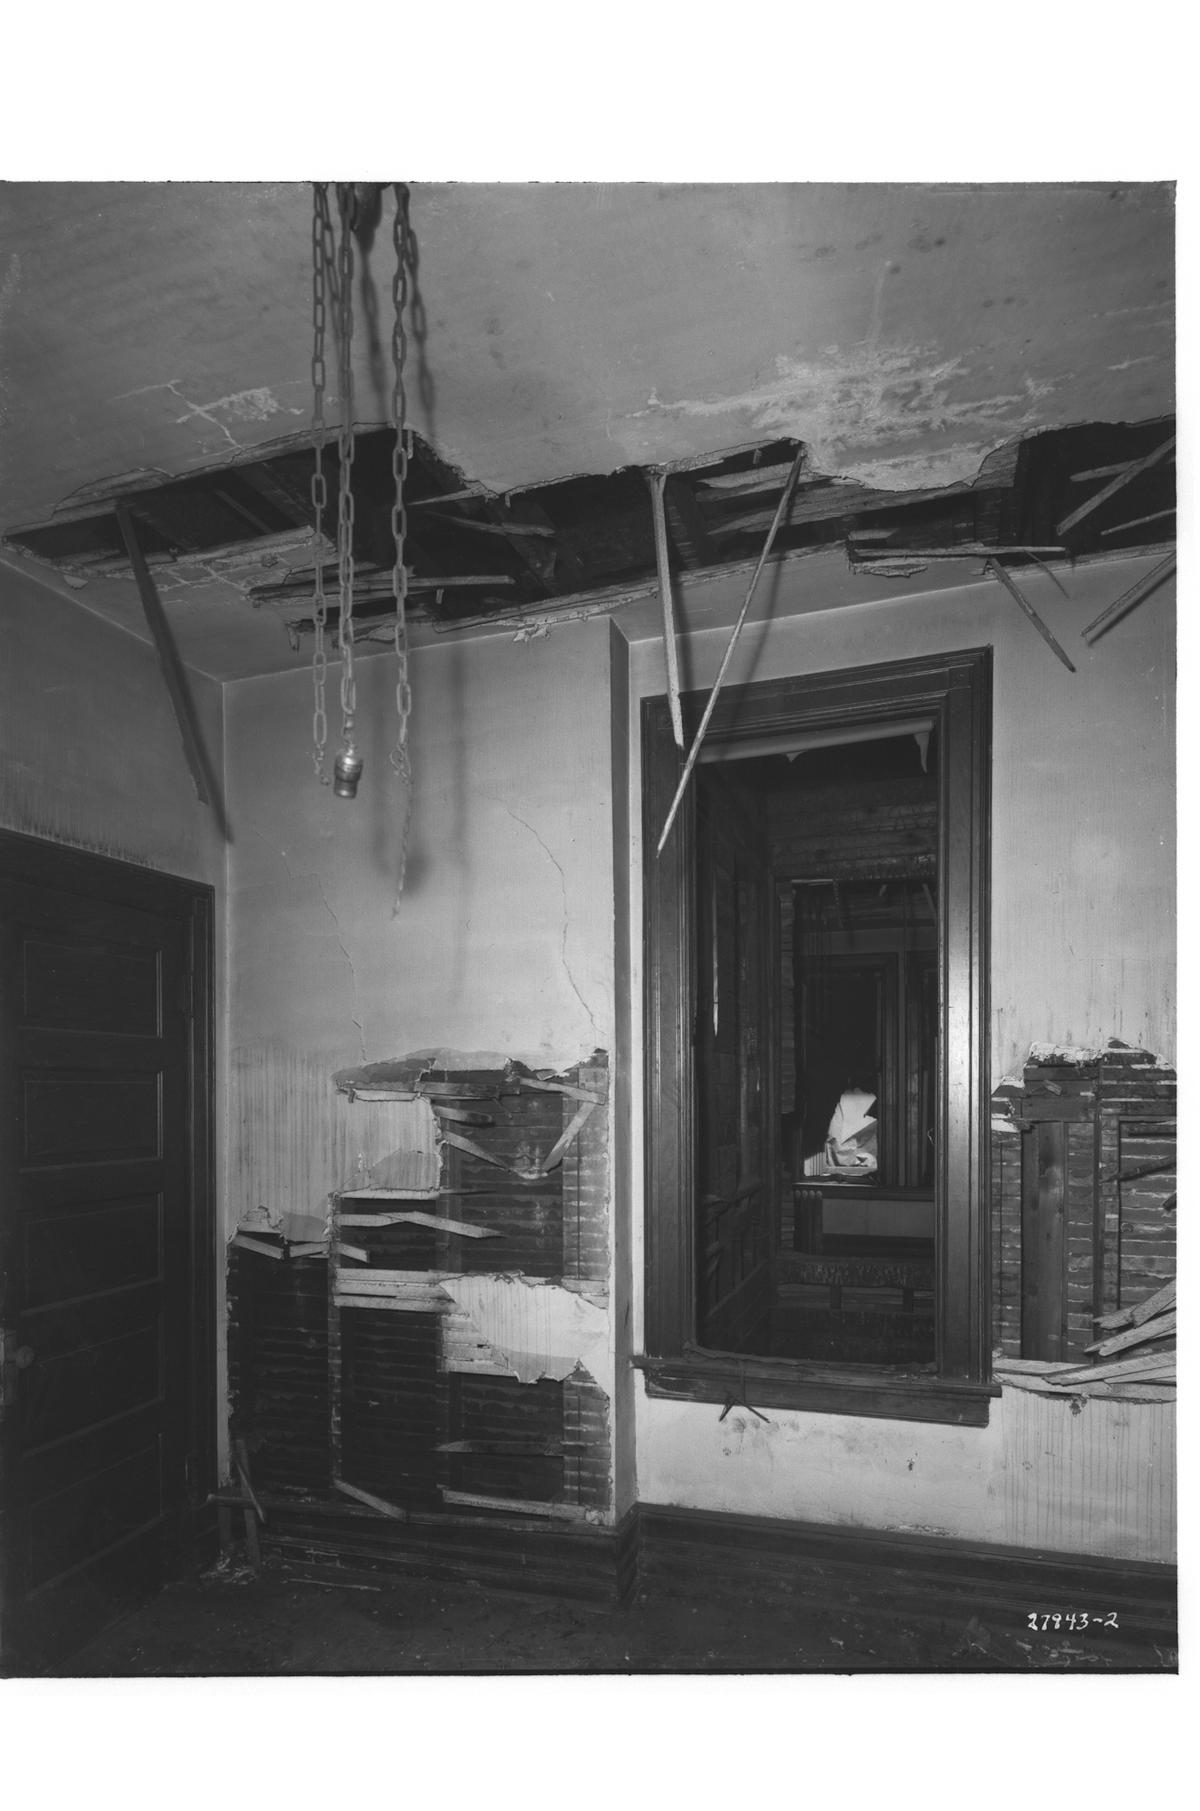 149 South Francisco Avenue, interior view